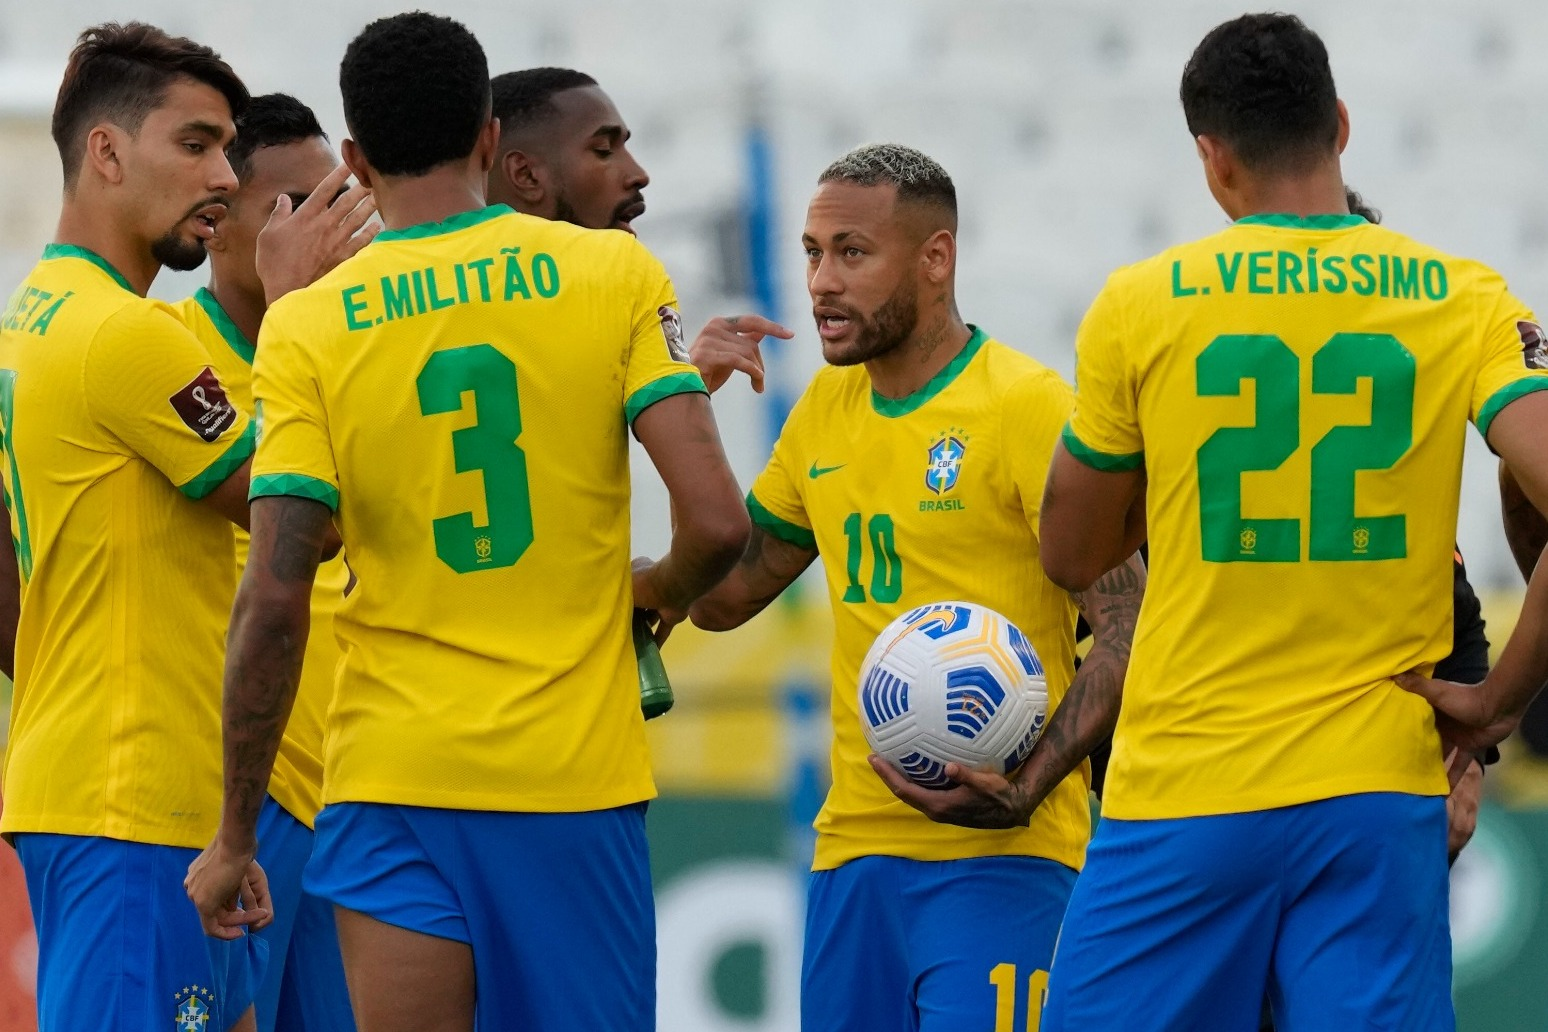 Brazilian players to be barred from playing in Premier League matches